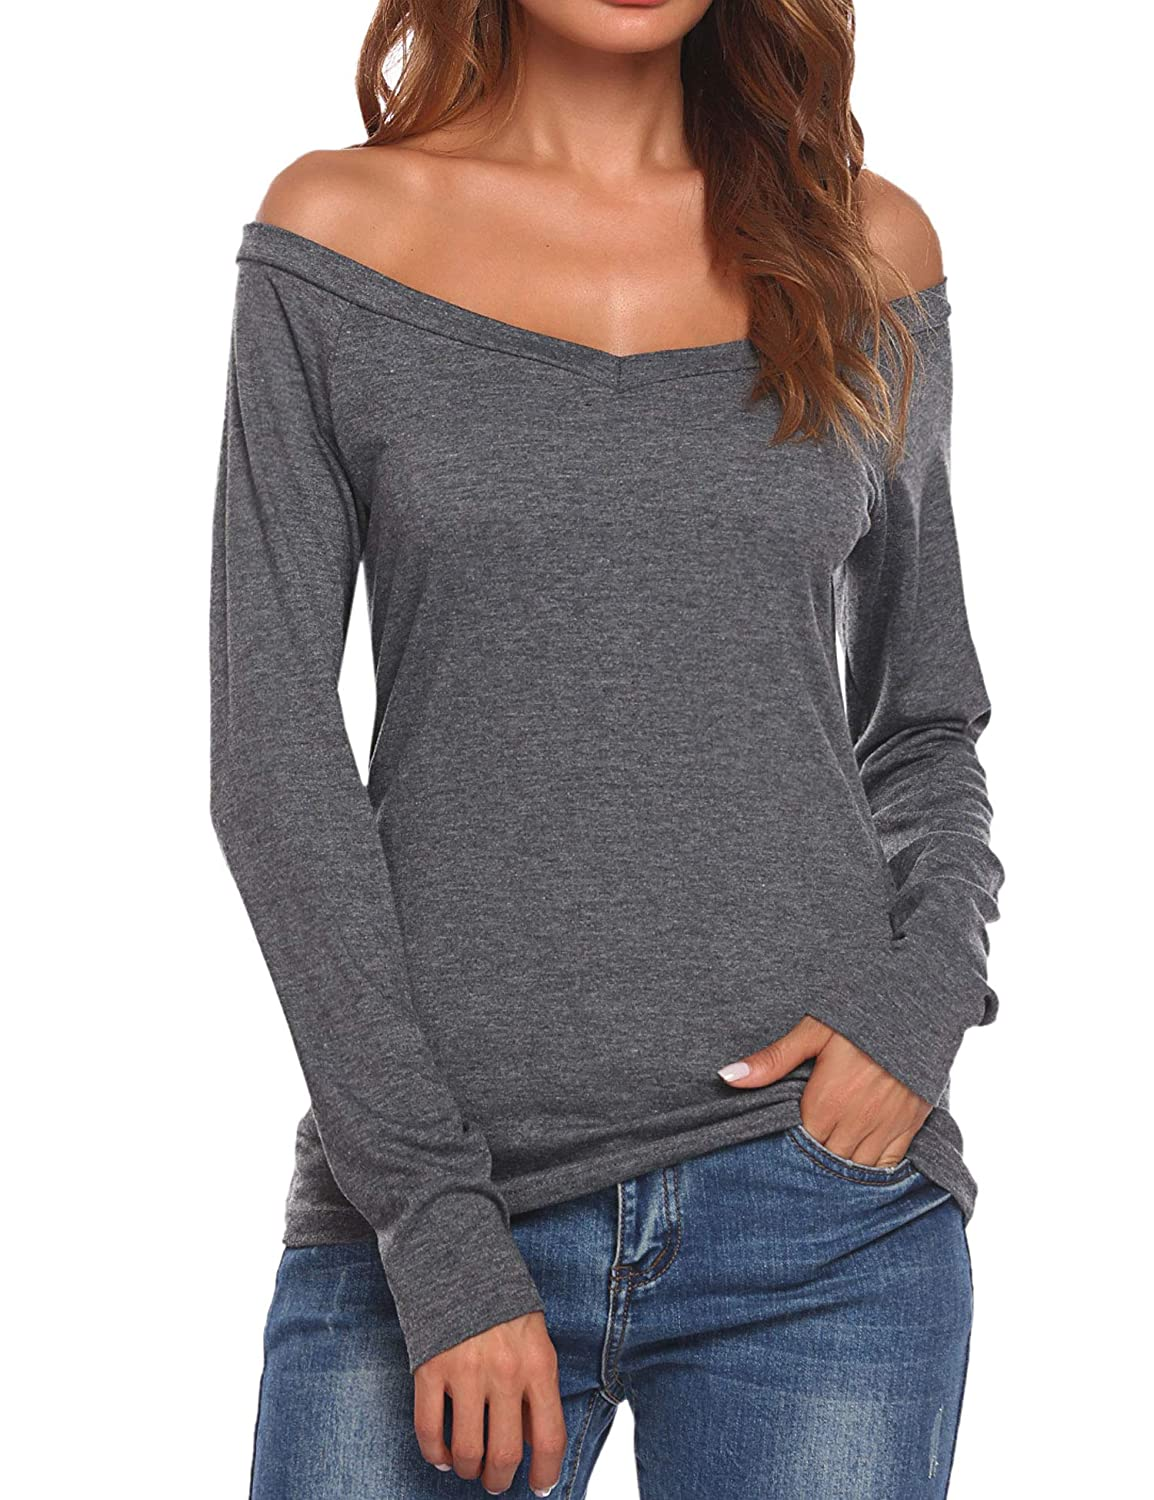 64f54bcf4c7 SoTeer Women Off-Shoulder Shirt V Neck Sexy Blouse Slim Fit Long Sleeve  Side Slit High Low Casual Tops at Amazon Women s Clothing store